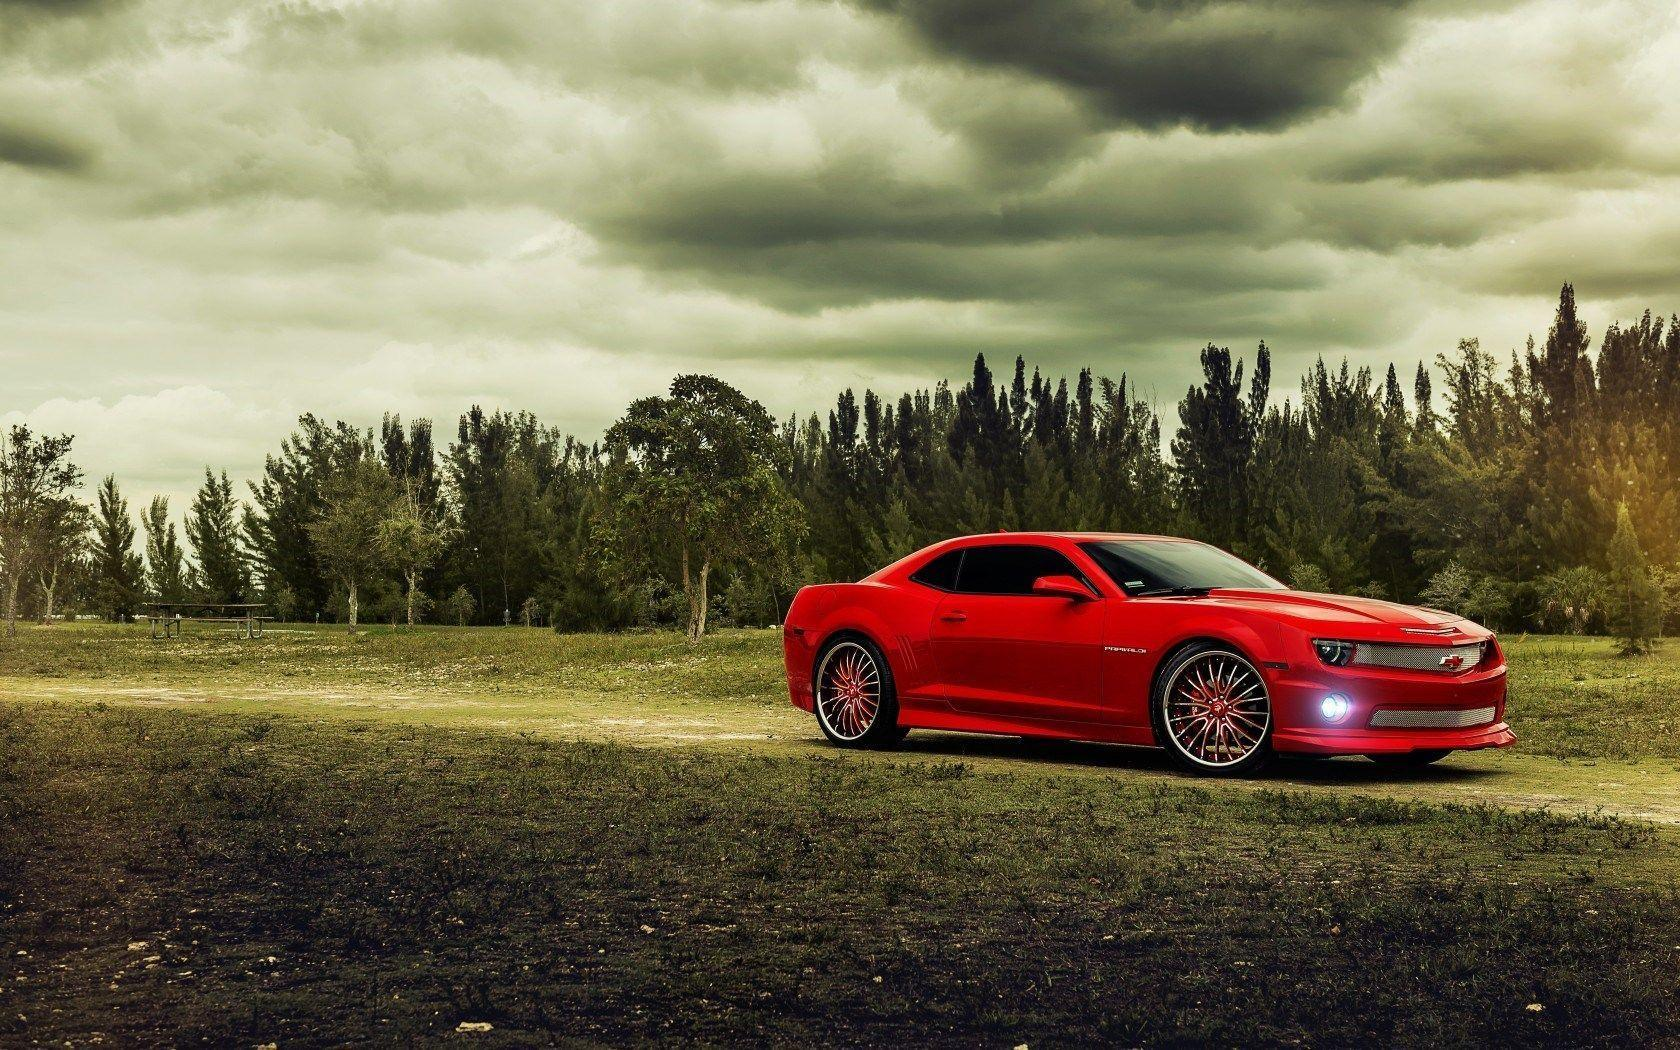 Chevrolet Camaro Red Muscle Car Forest HD Wallpaper - ZoomWalls